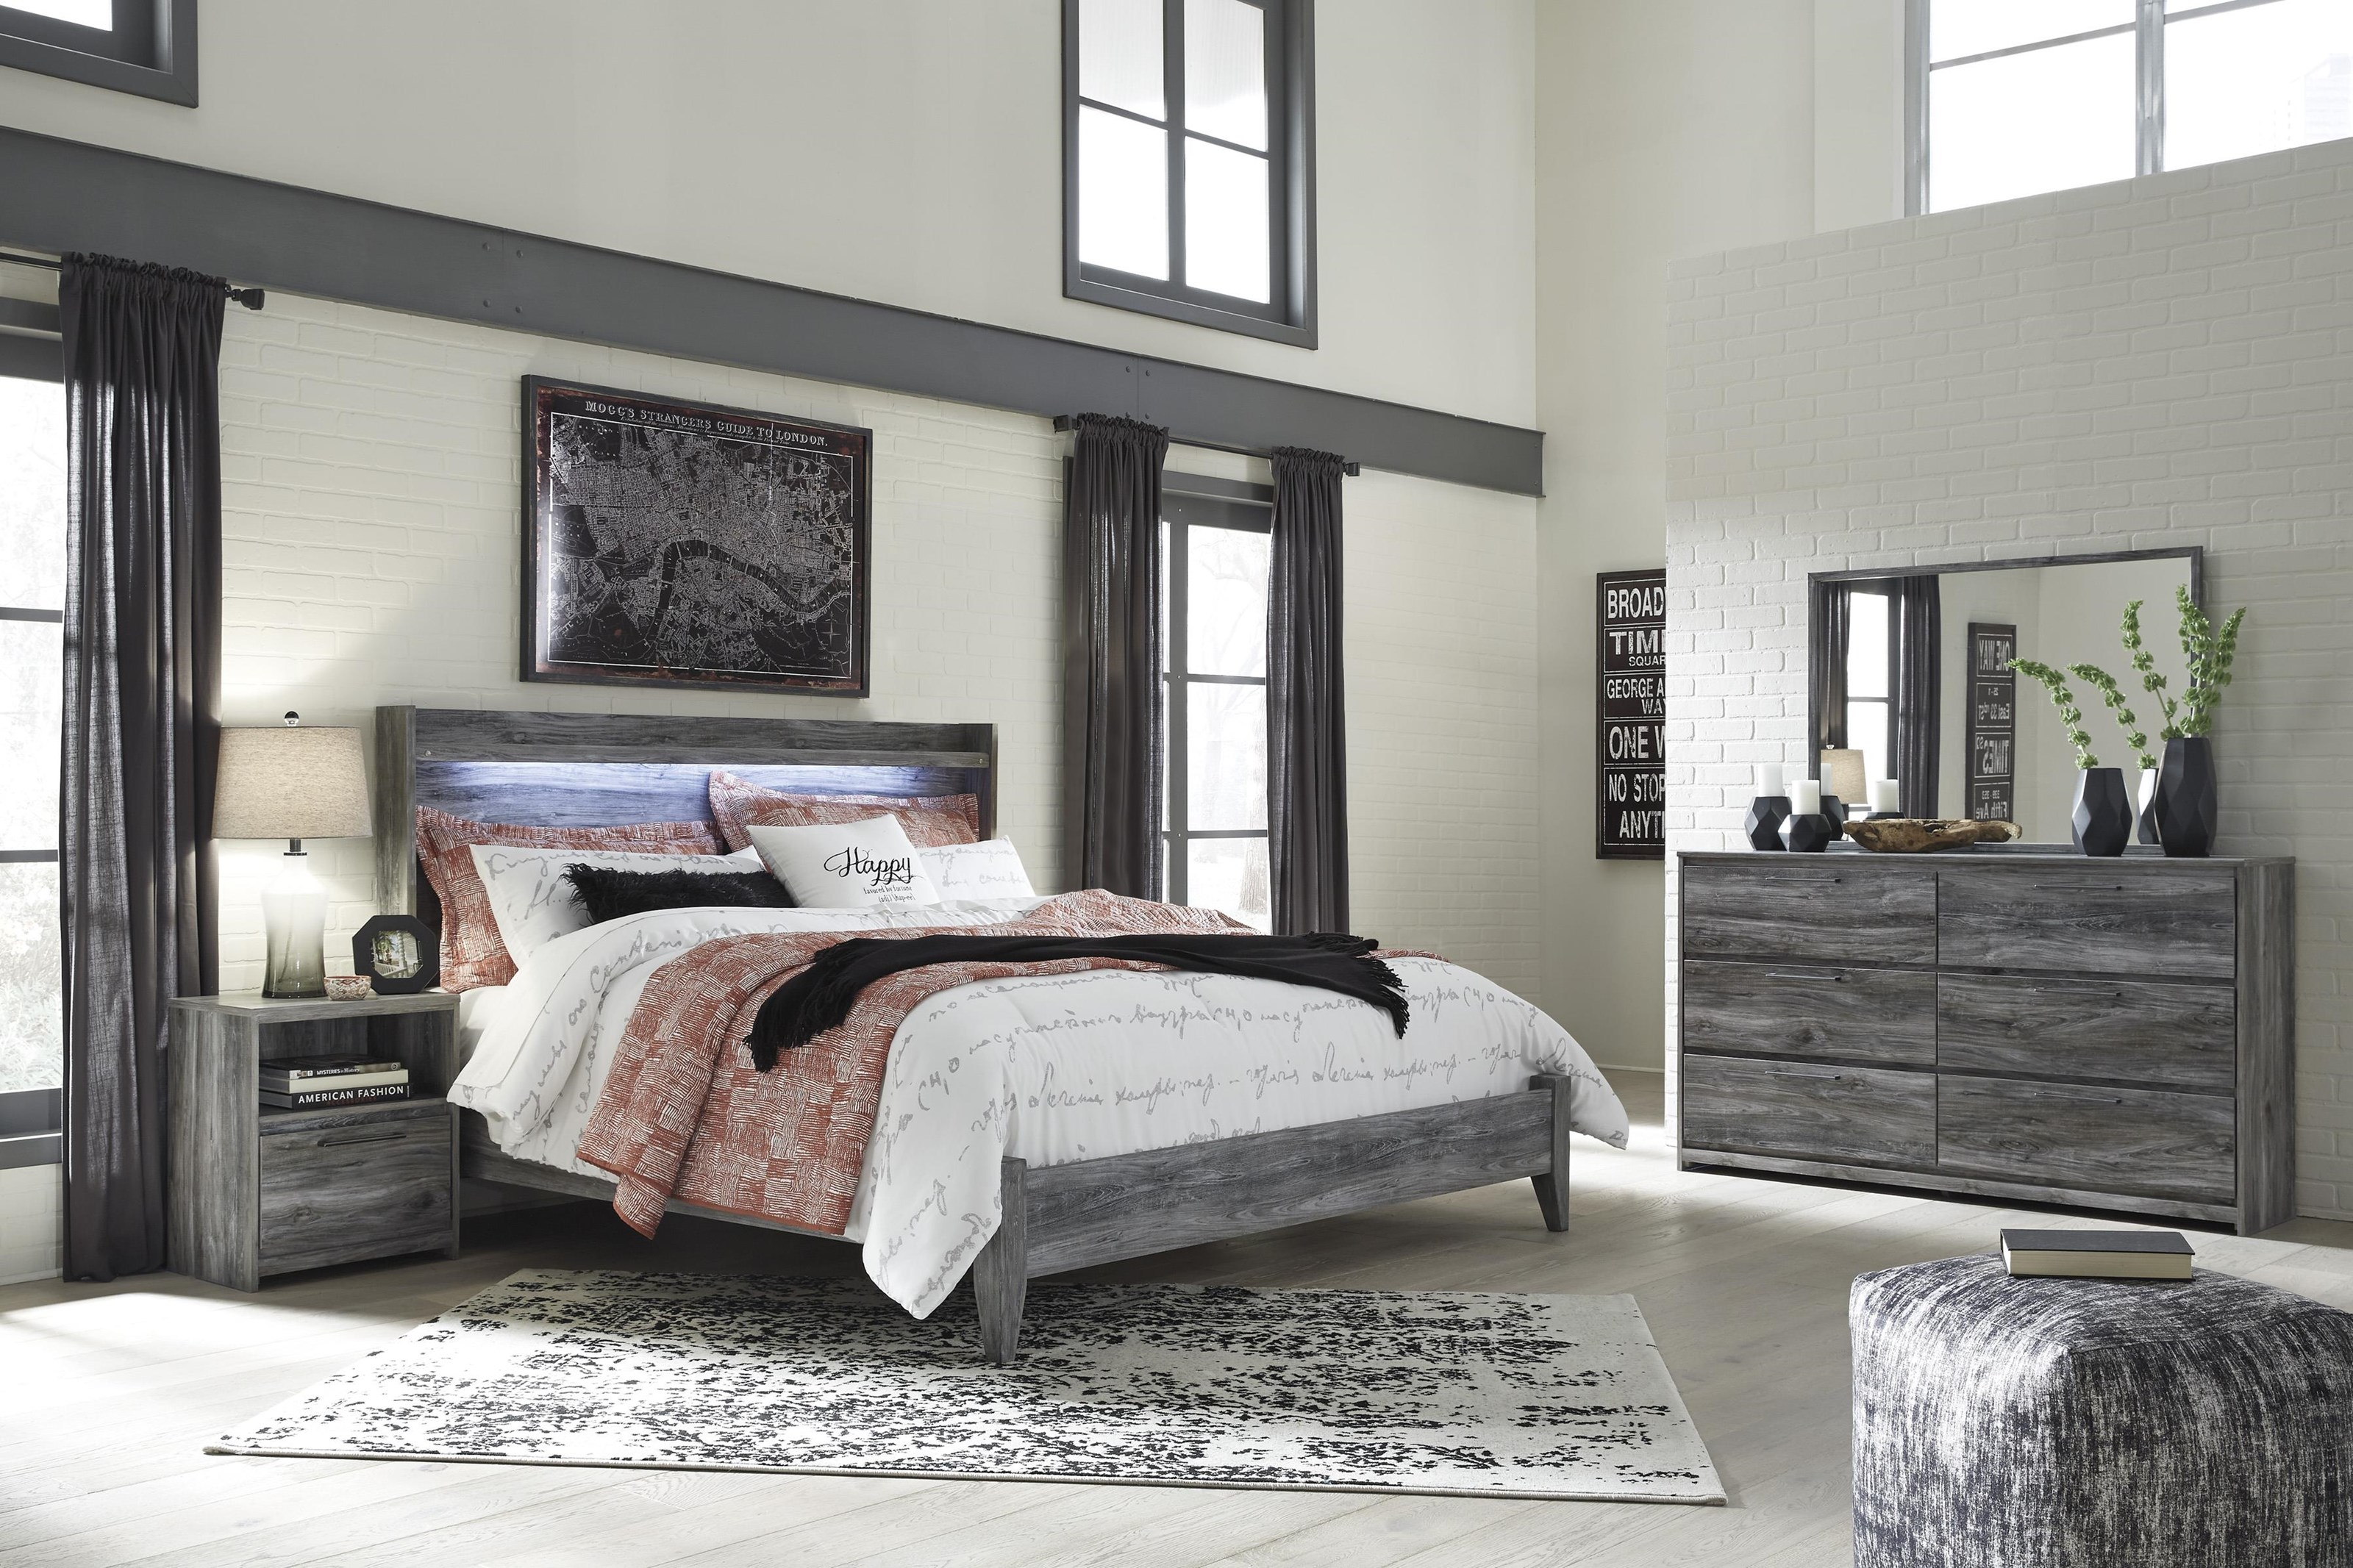 Baystorm 5PC King Bedroom Group by Signature Design by Ashley at Value City Furniture